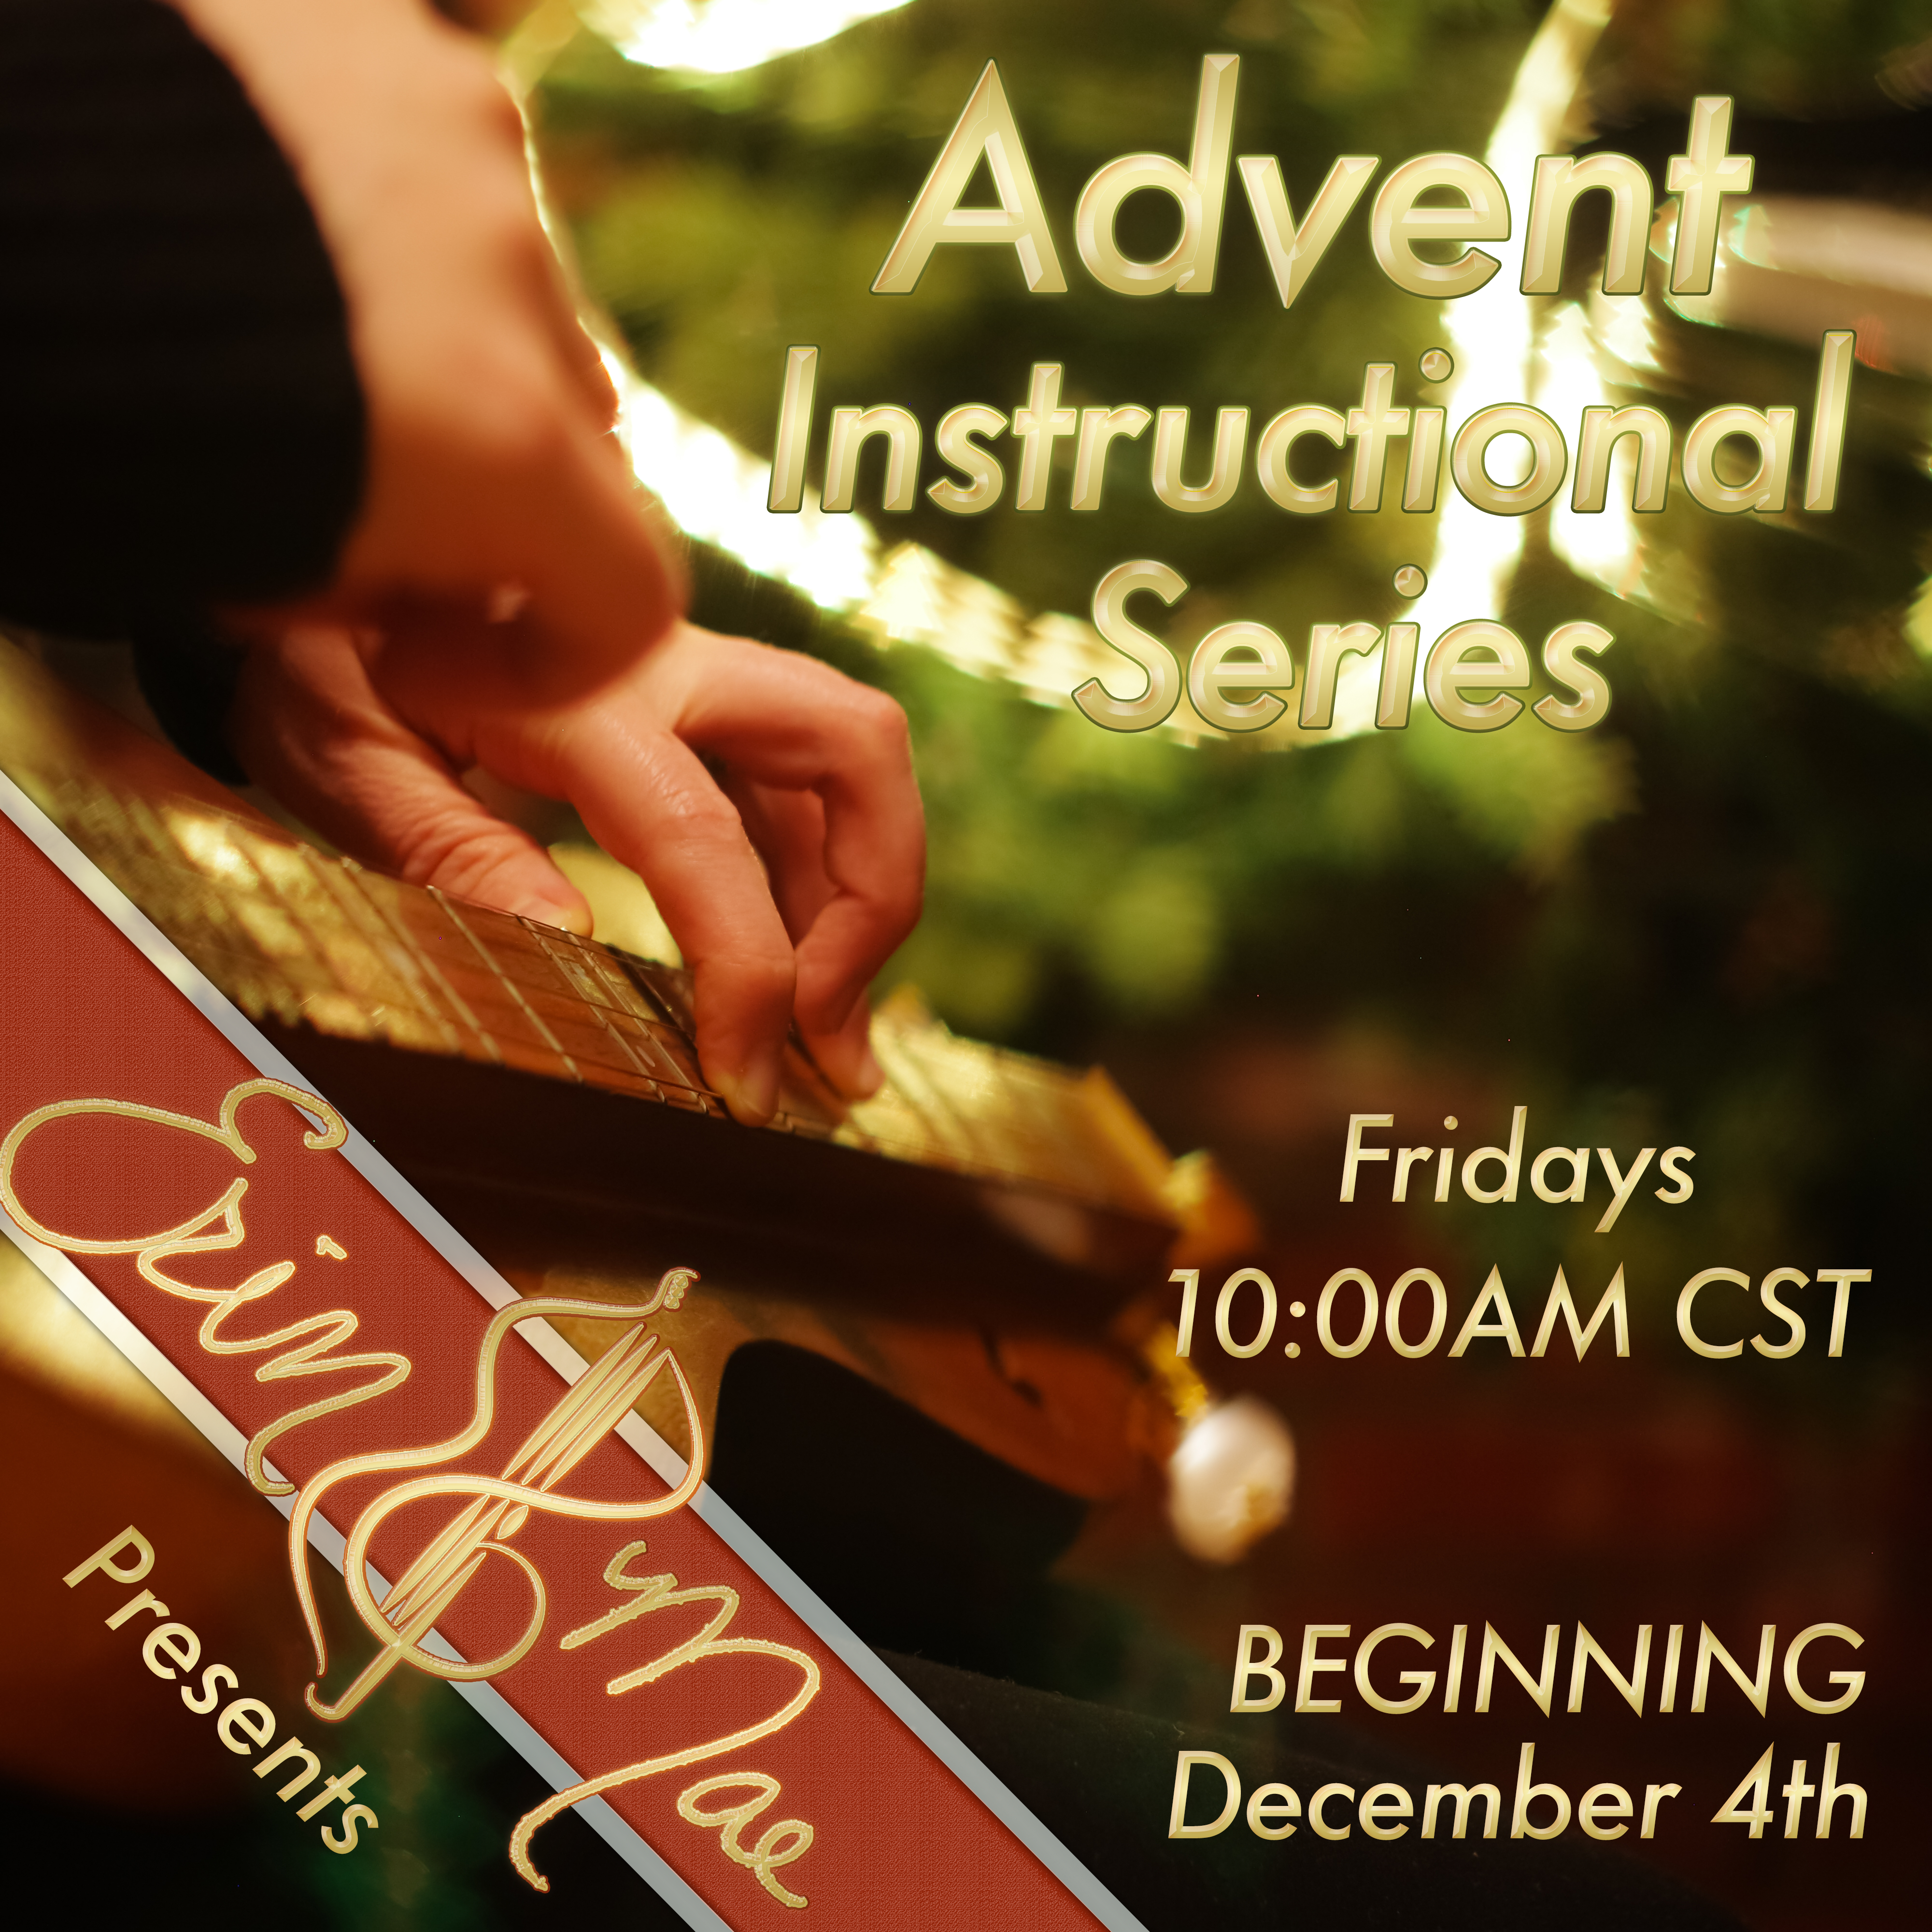 Advent Instructional Series - Friday